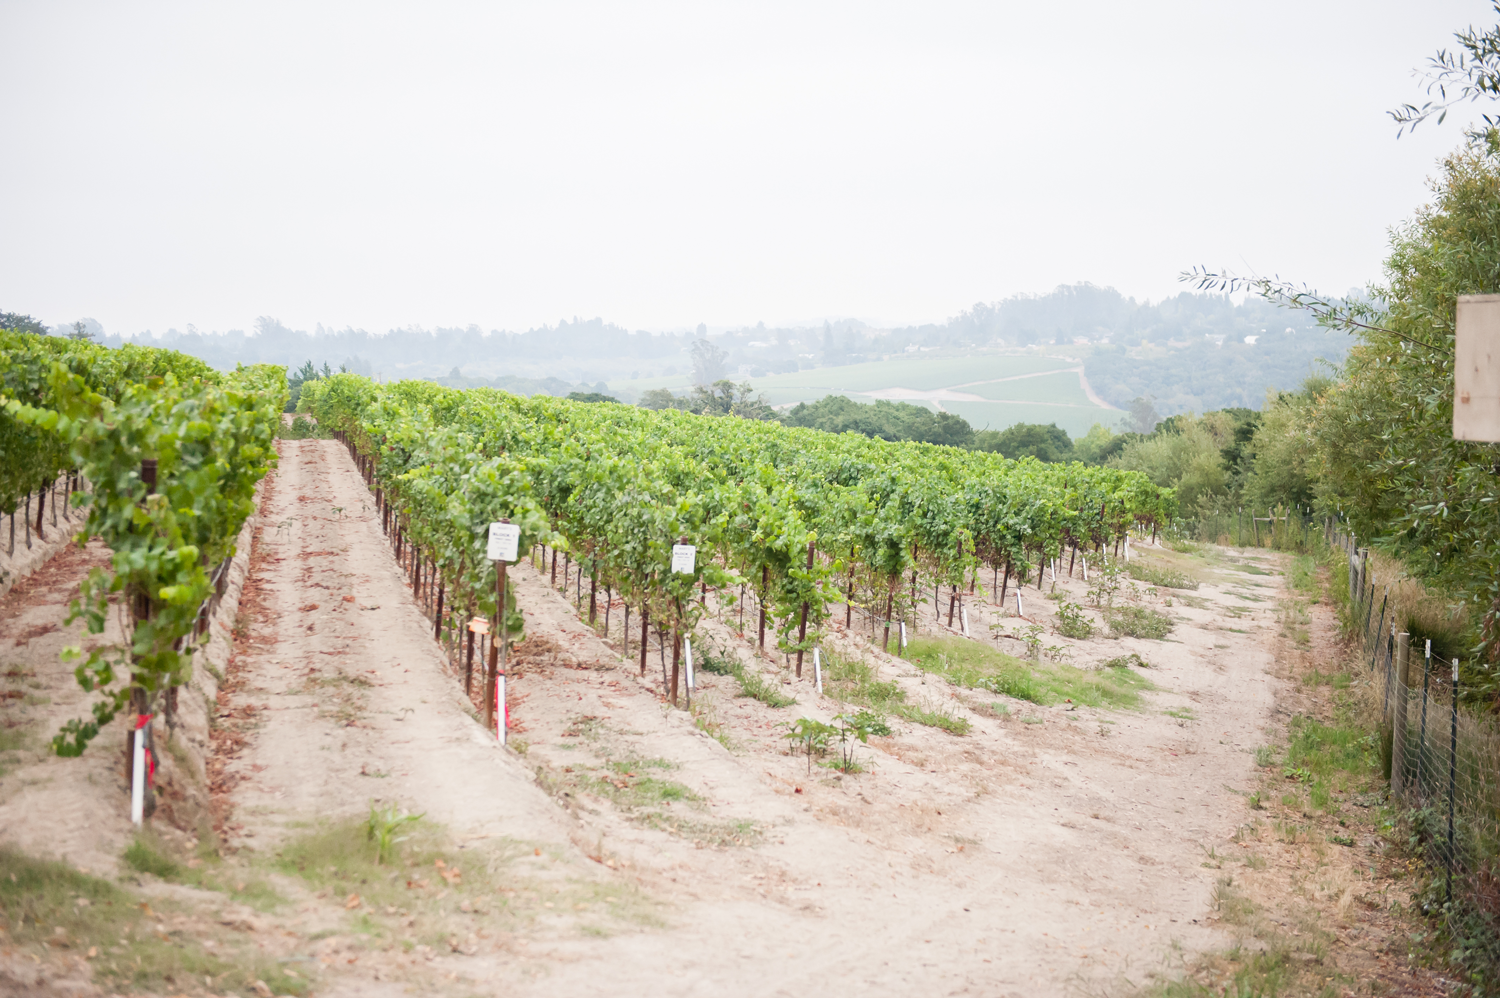 Mary's_Vineyard_rows_of_vines.png